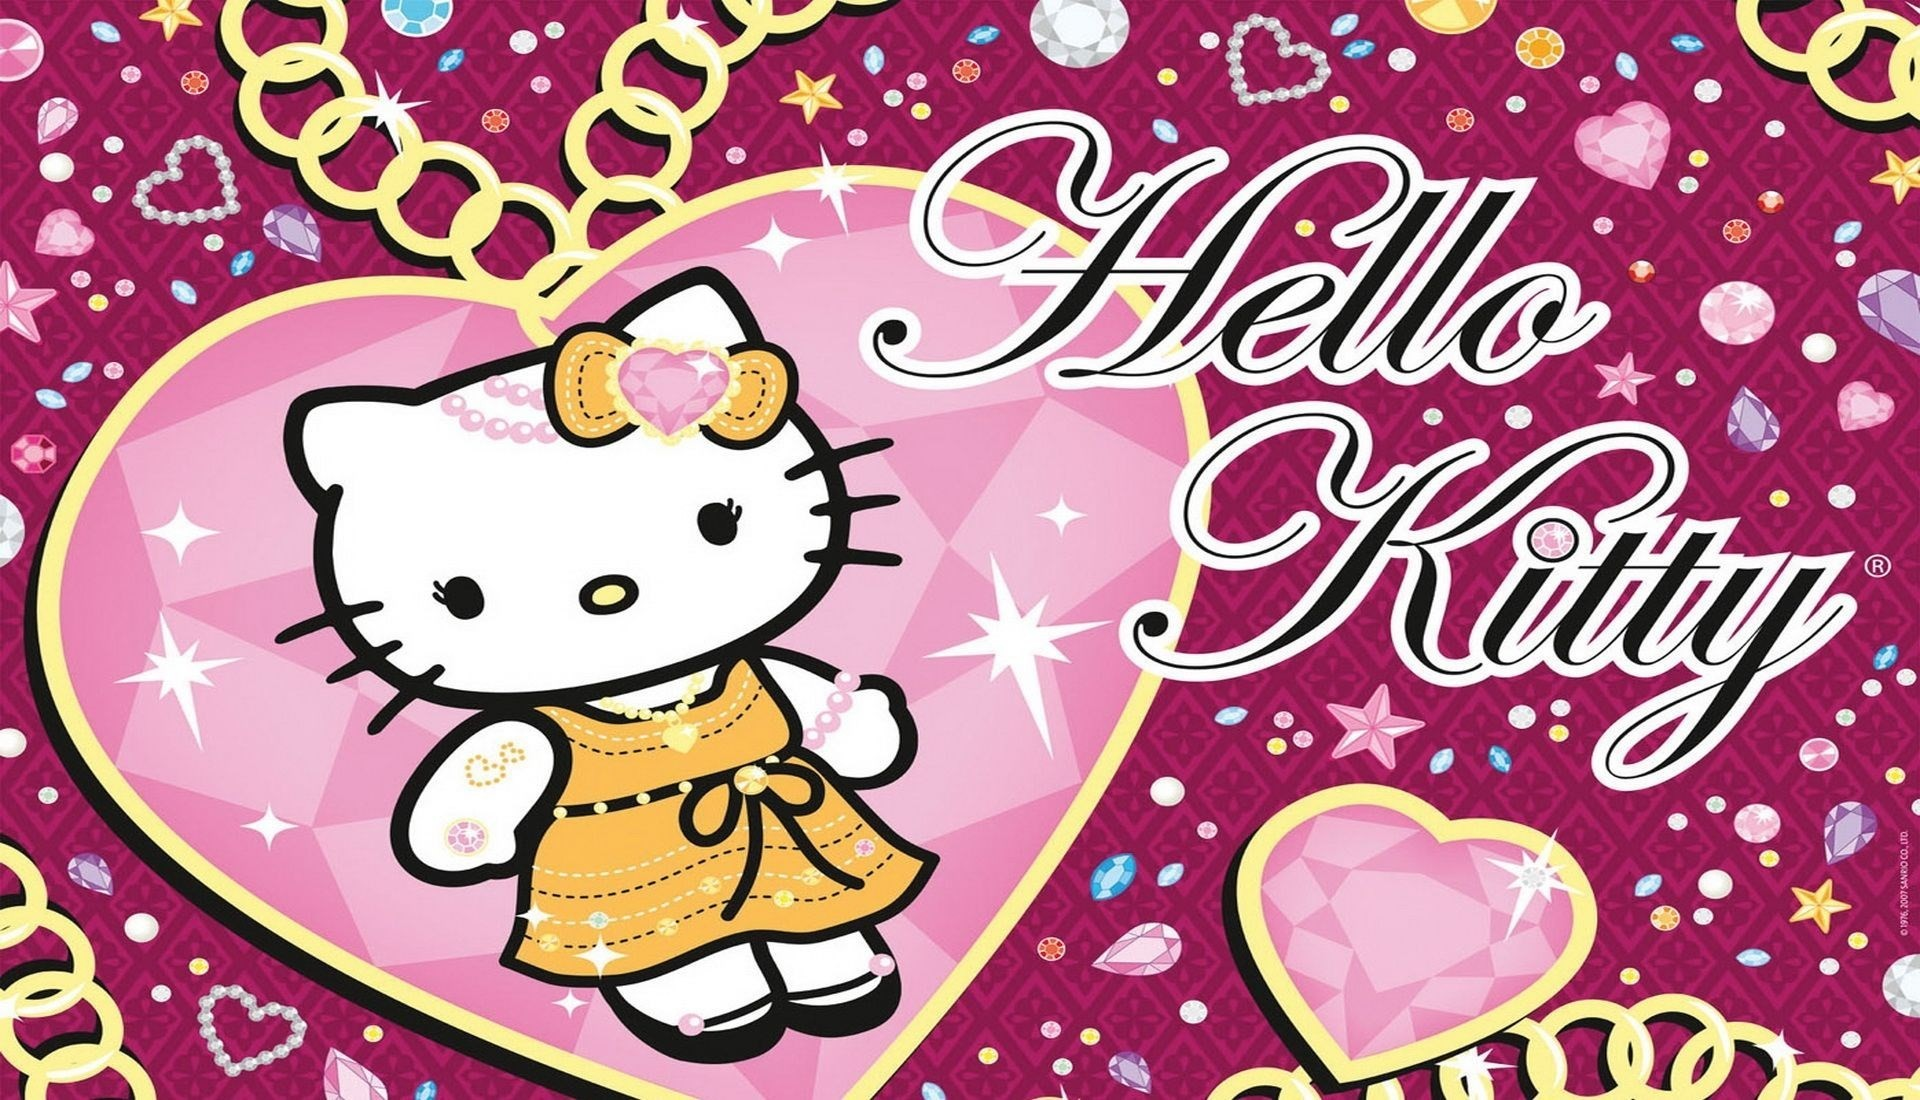 Cute Cat Wallpaper For Phone Cute Hello Kitty Wallpapers 183 ① Wallpapertag